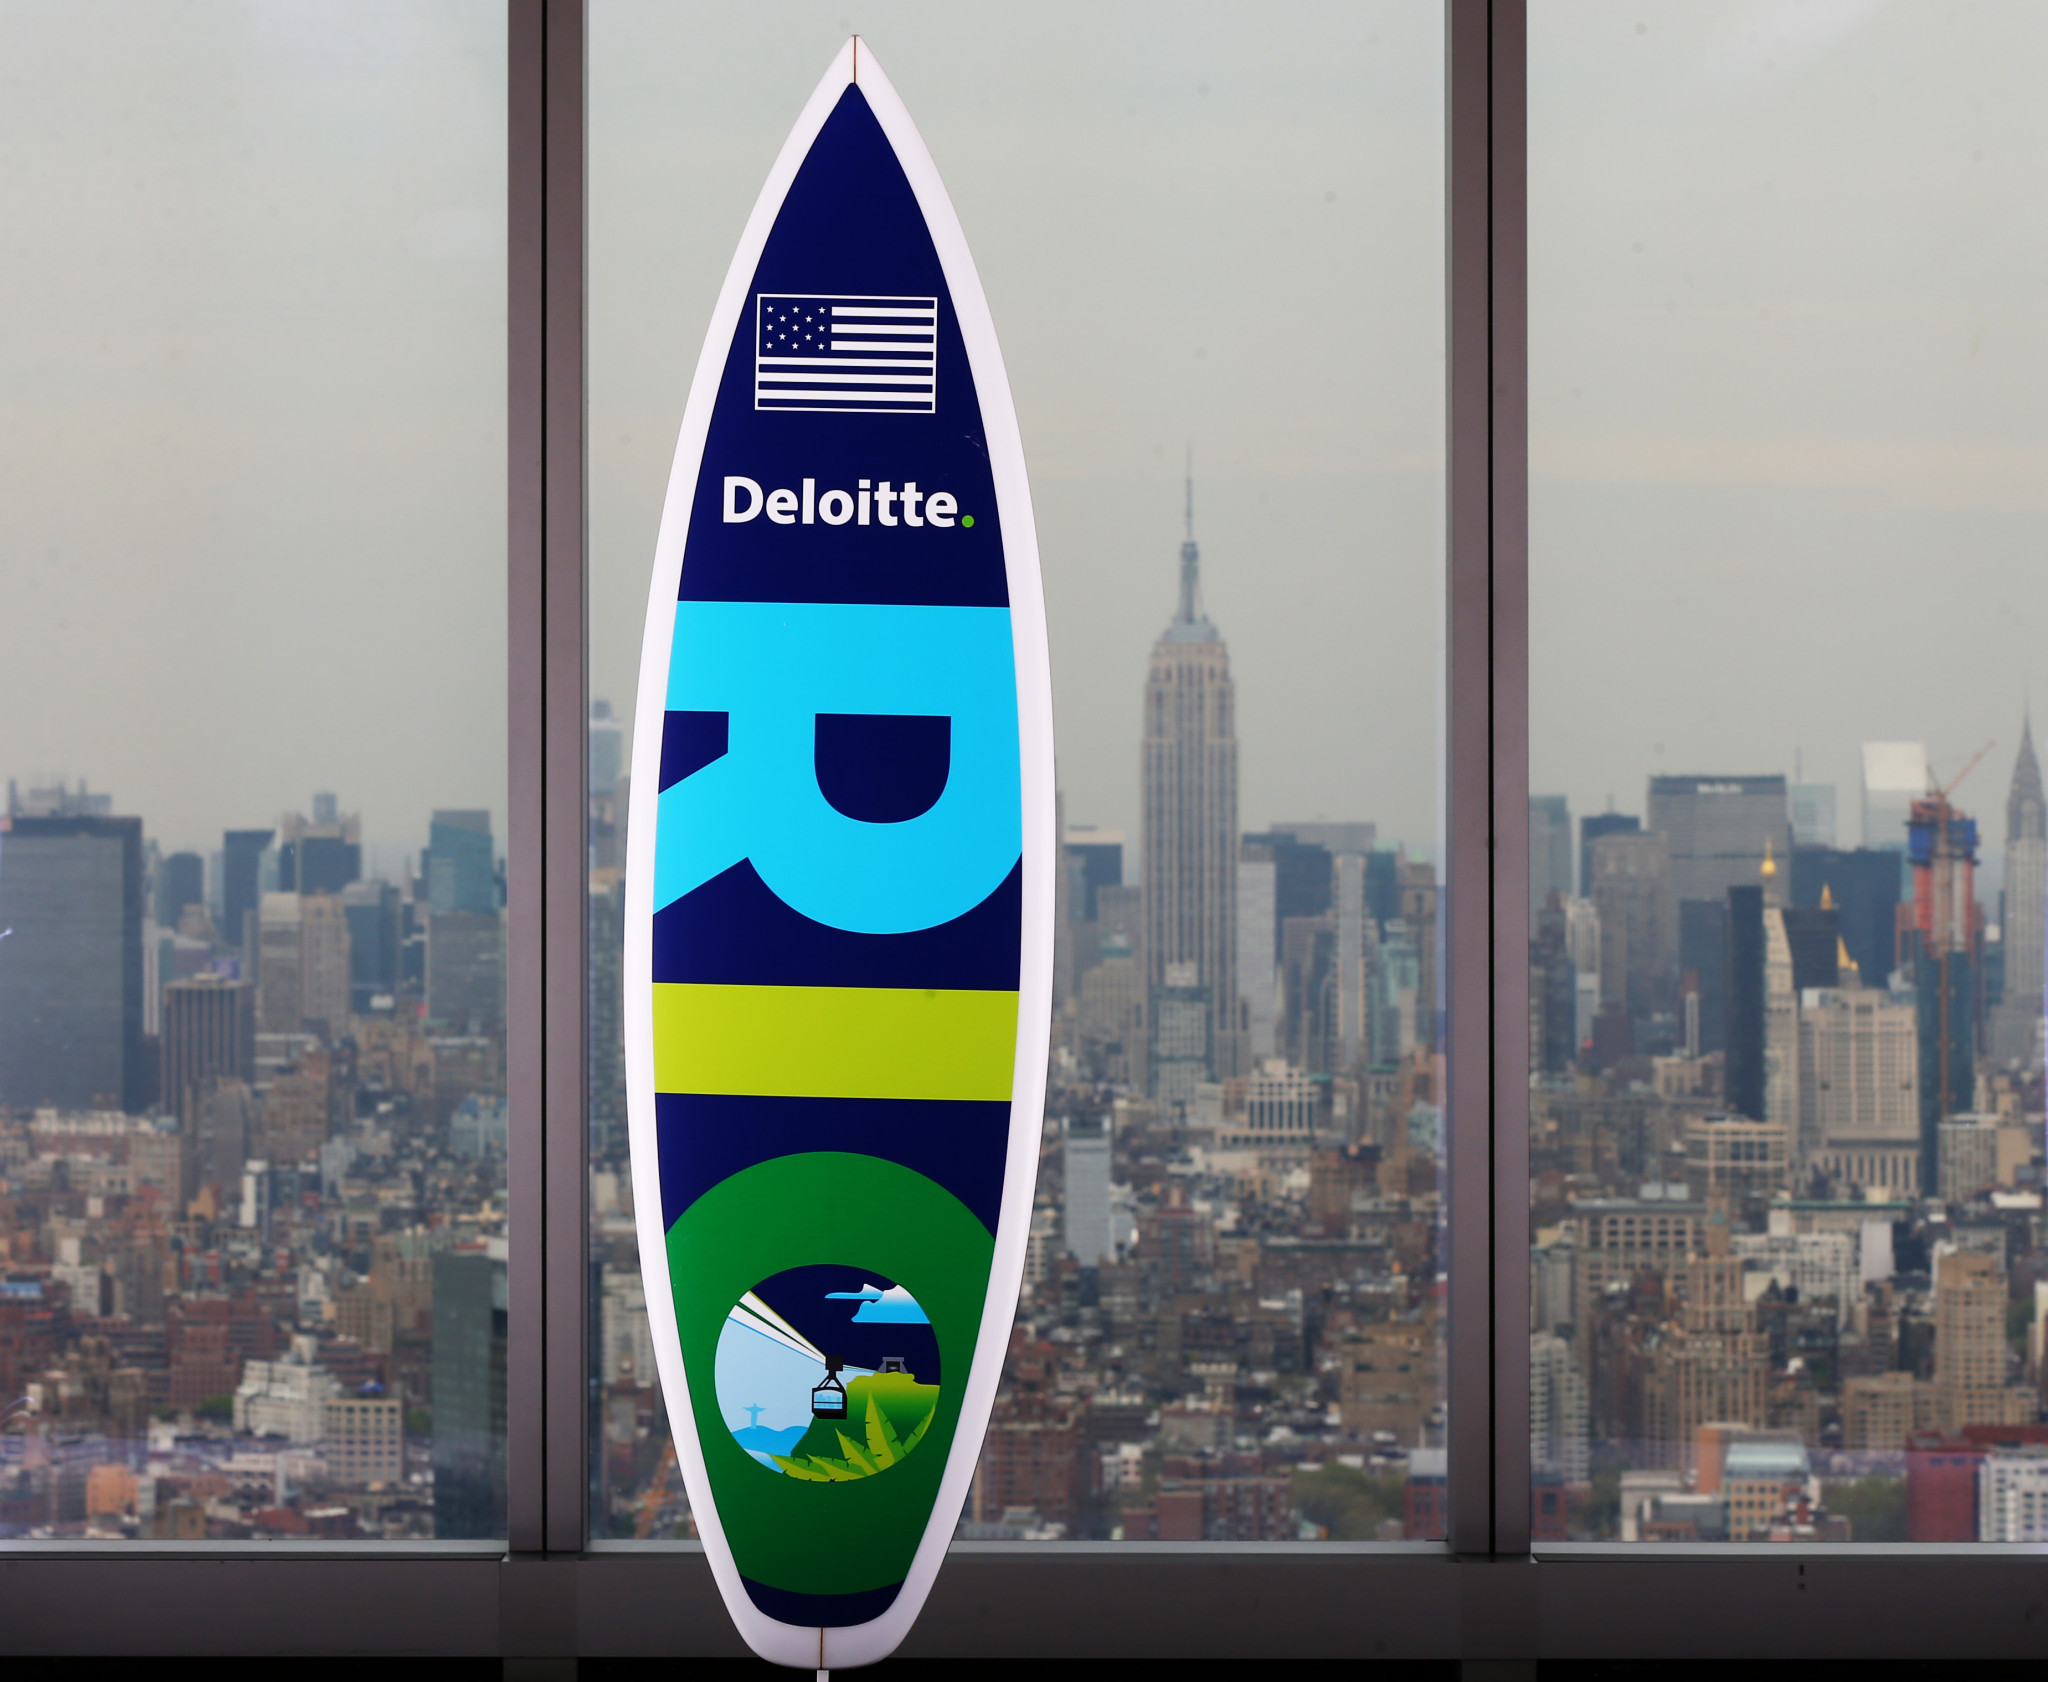 Deloitte will continue its sponsorship of Team USA which stretches back to 2009 ©Getty Images